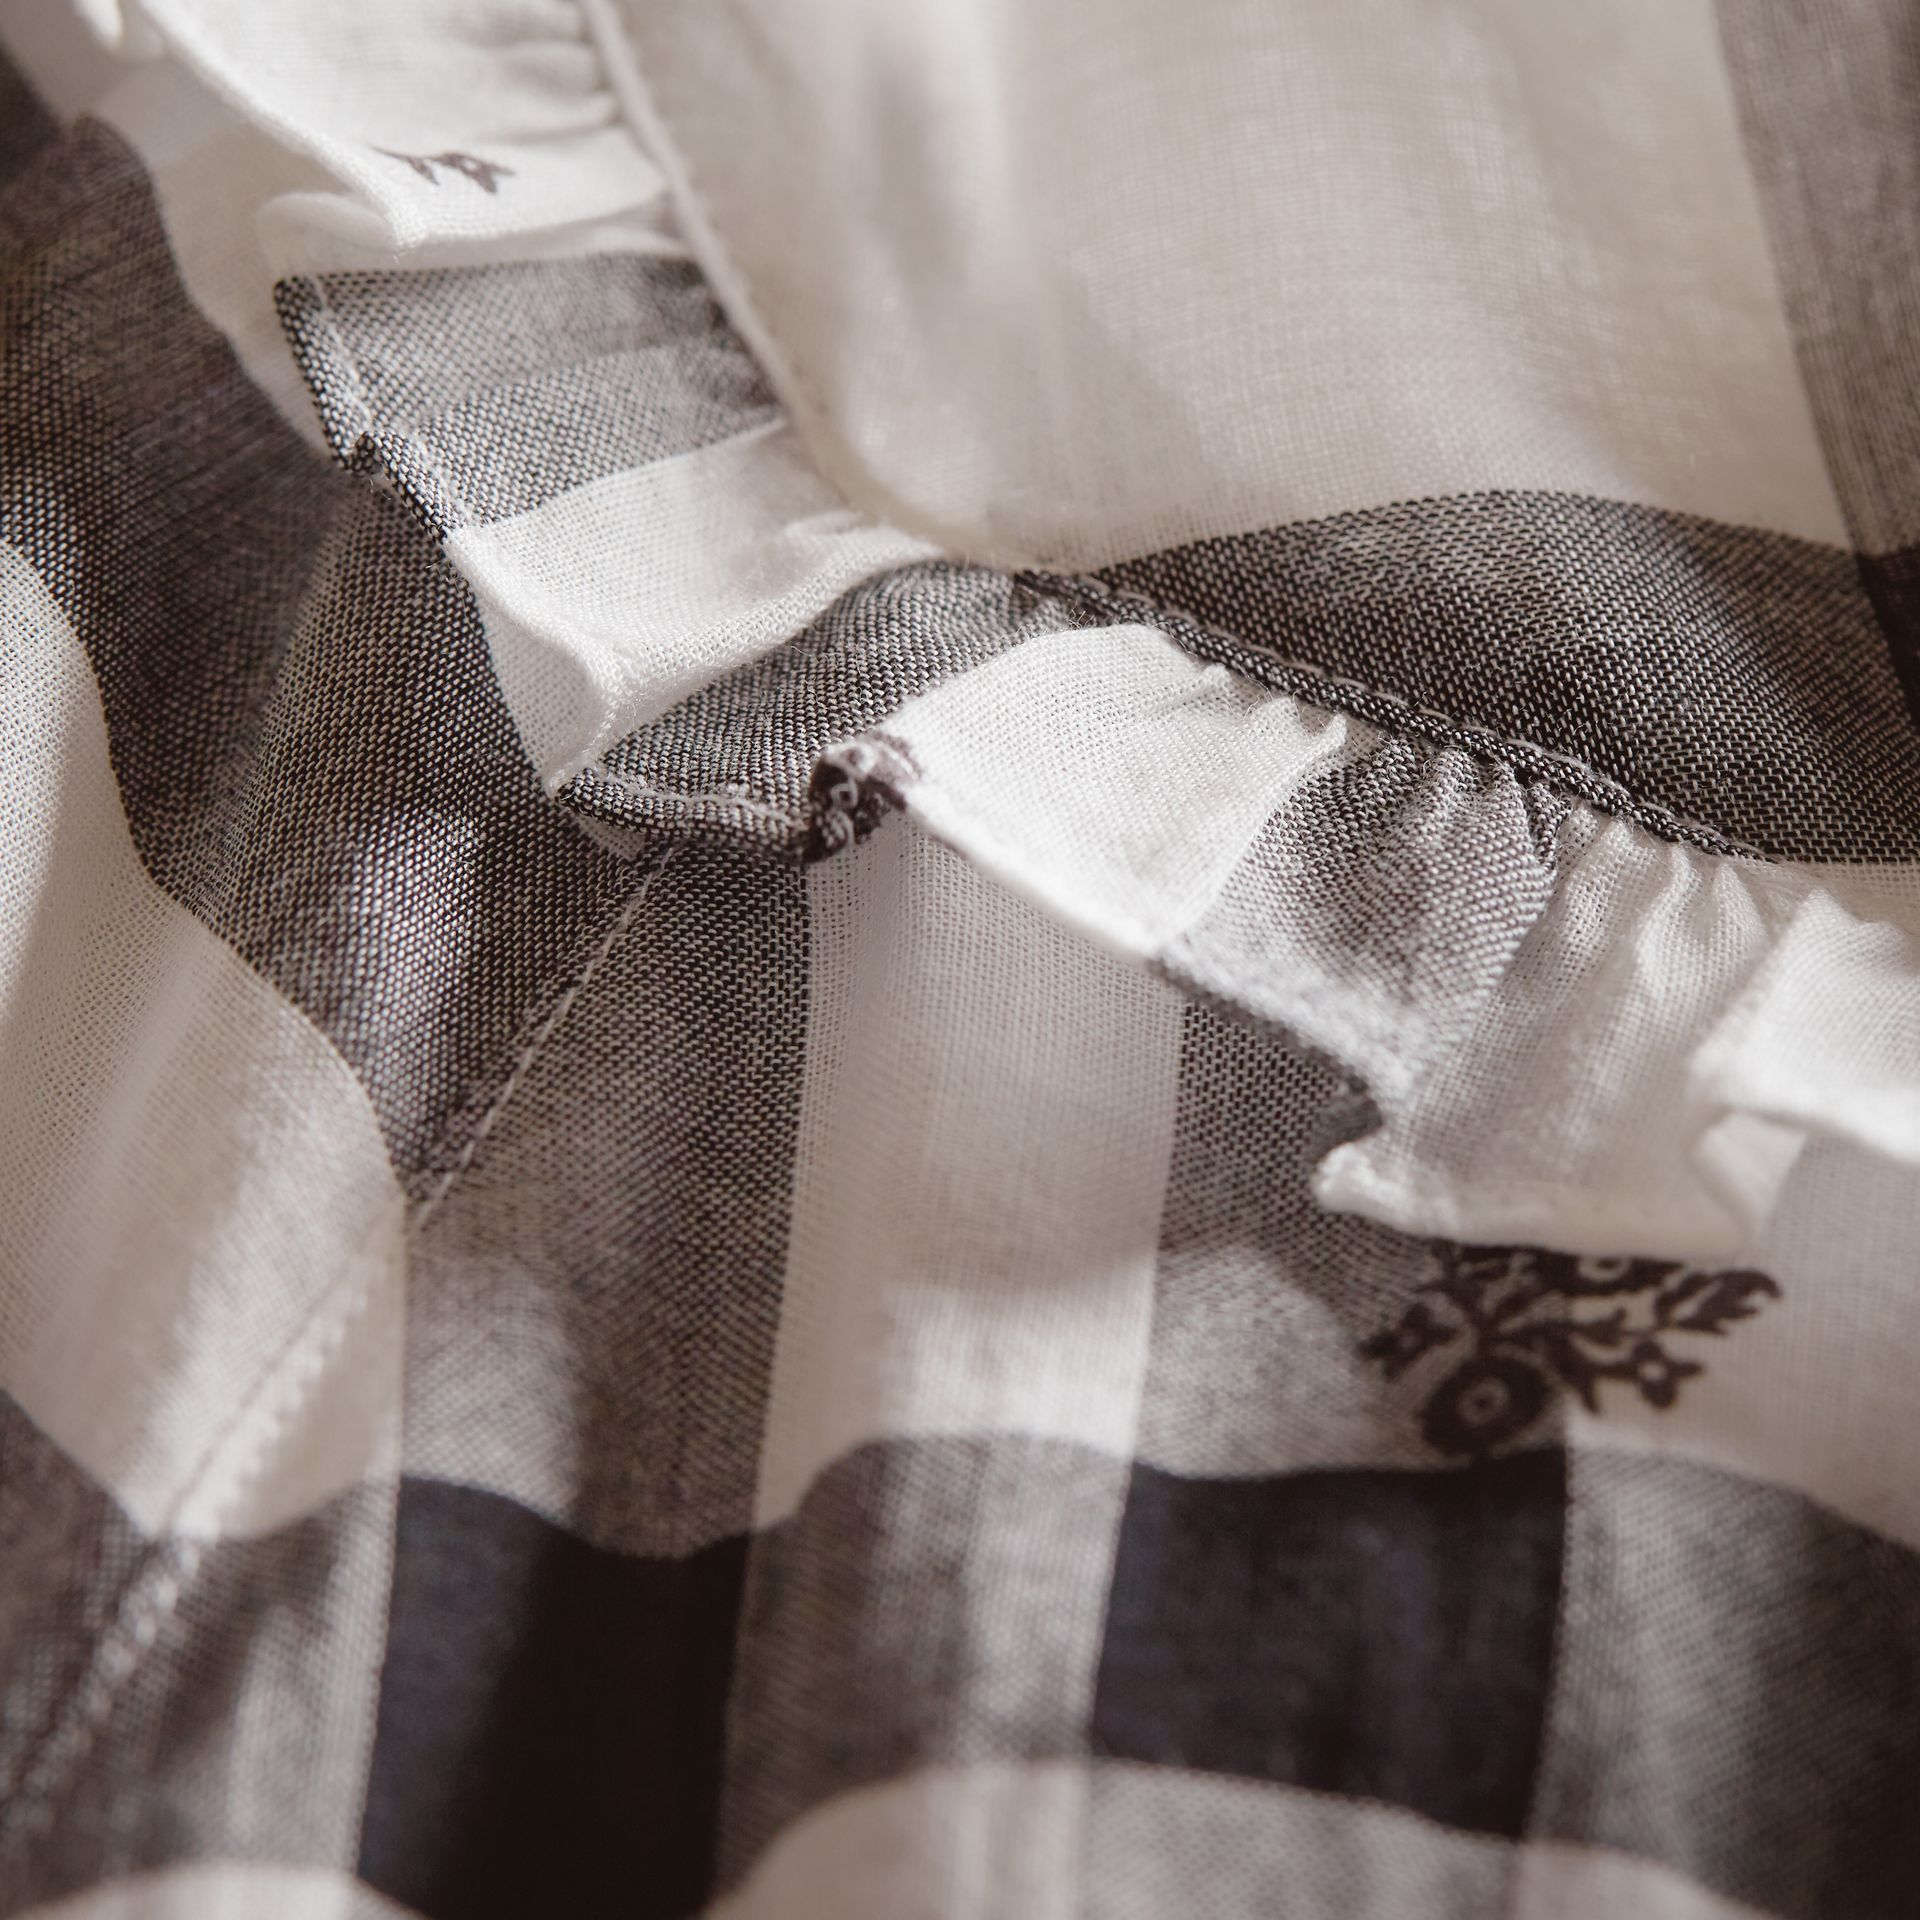 Ruffle Detail Floral Print Check Cotton Dress in White - Women | Burberry Singapore - gallery image 2